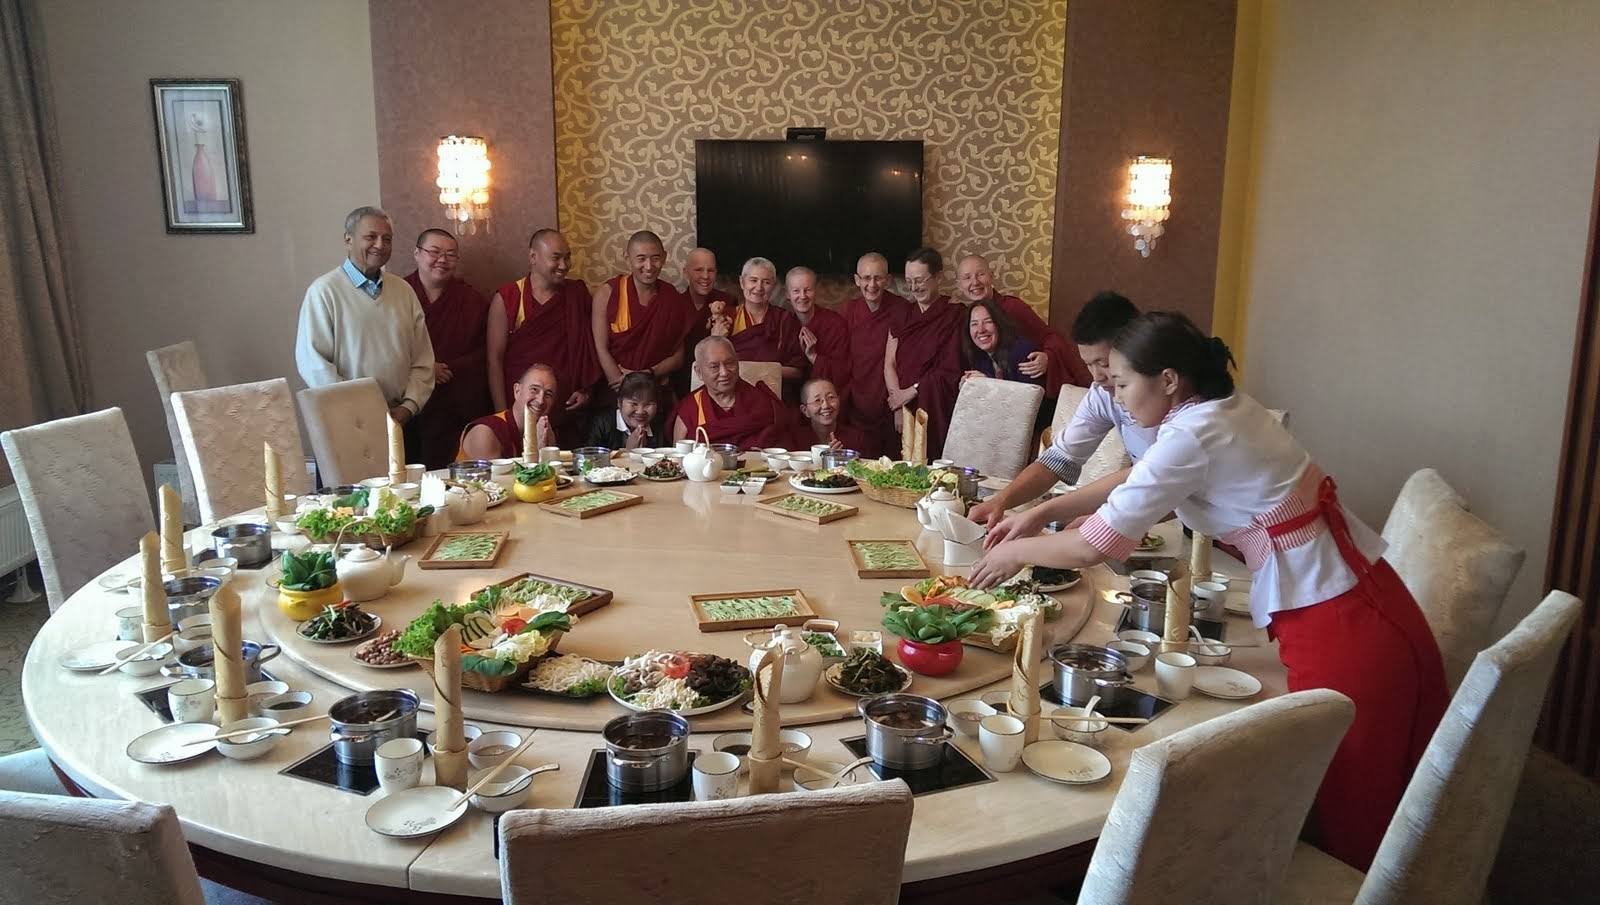 Sangha lunch: A delicious vegetarian lunch in Mongolia. Rinpoche enjoyed very much! Sept 2013 Photo. Ven.Roger Kunsang